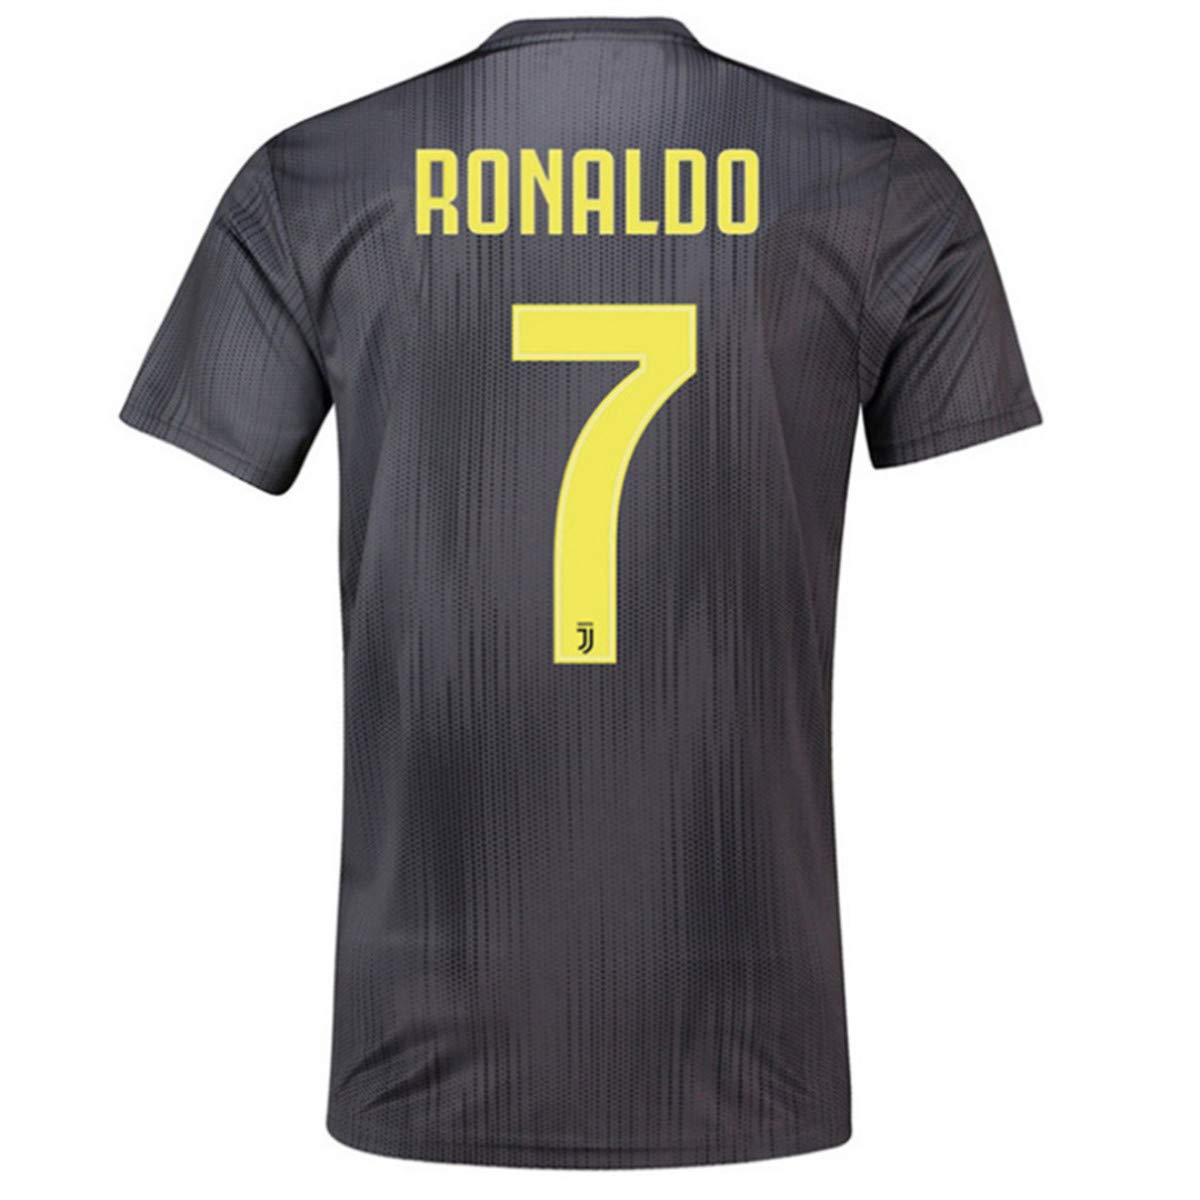 becadf130 Amazon.com  SALLARM Juventus (Juve) Away  7 C Ronaldo 2018-2019 Soccer  Jersey Mens Black  Clothing